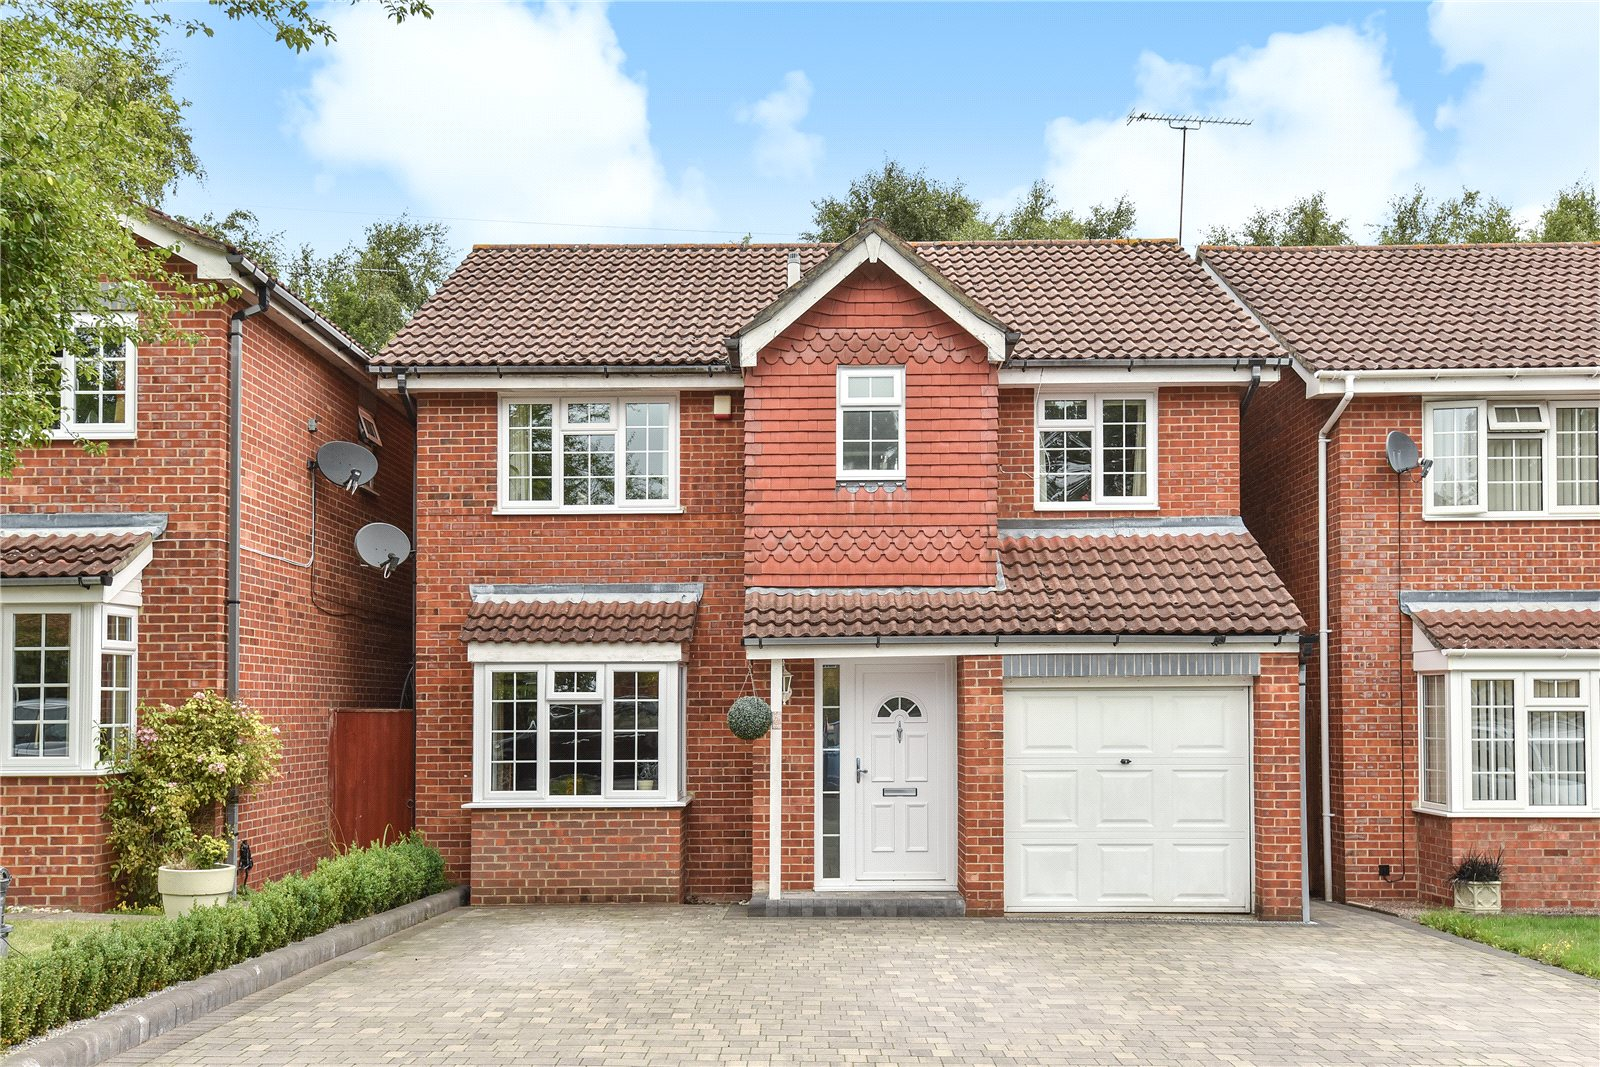 4 Bedrooms Detached House for sale in Peggotty Place, Sandhurst, Berkshire, GU47